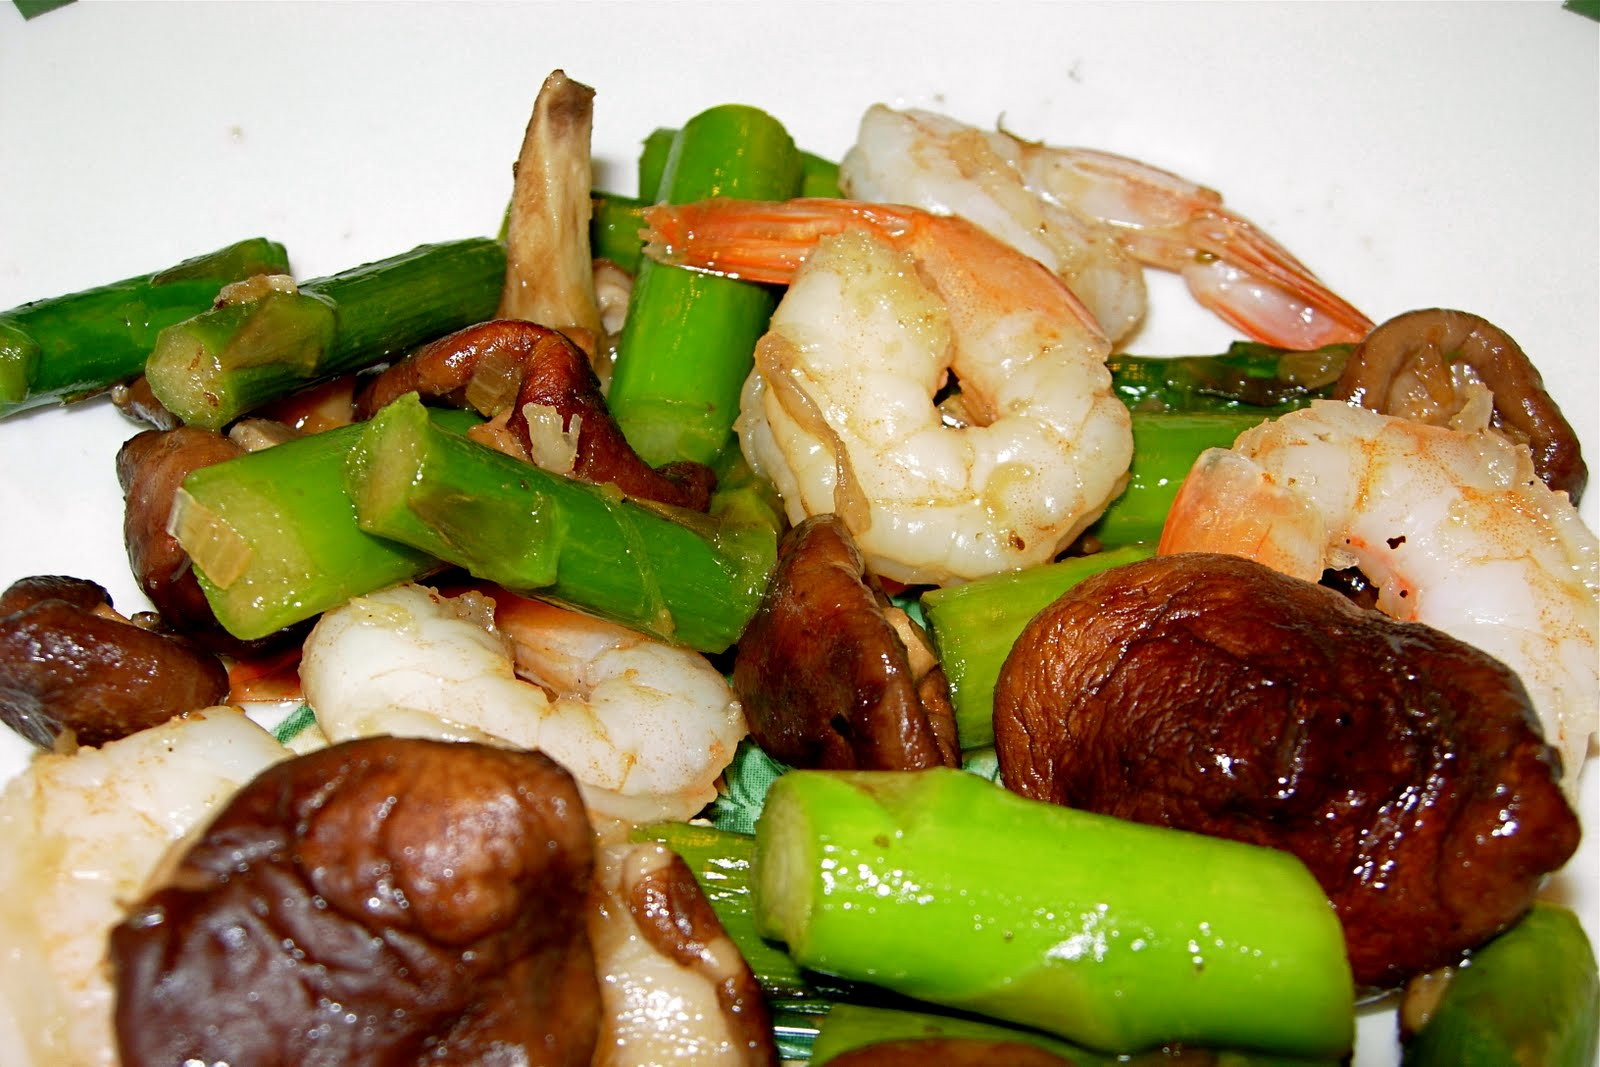 CFSCC presents: EAT THIS!: Shrimp, Asparagus & Shiitake Stir Fry